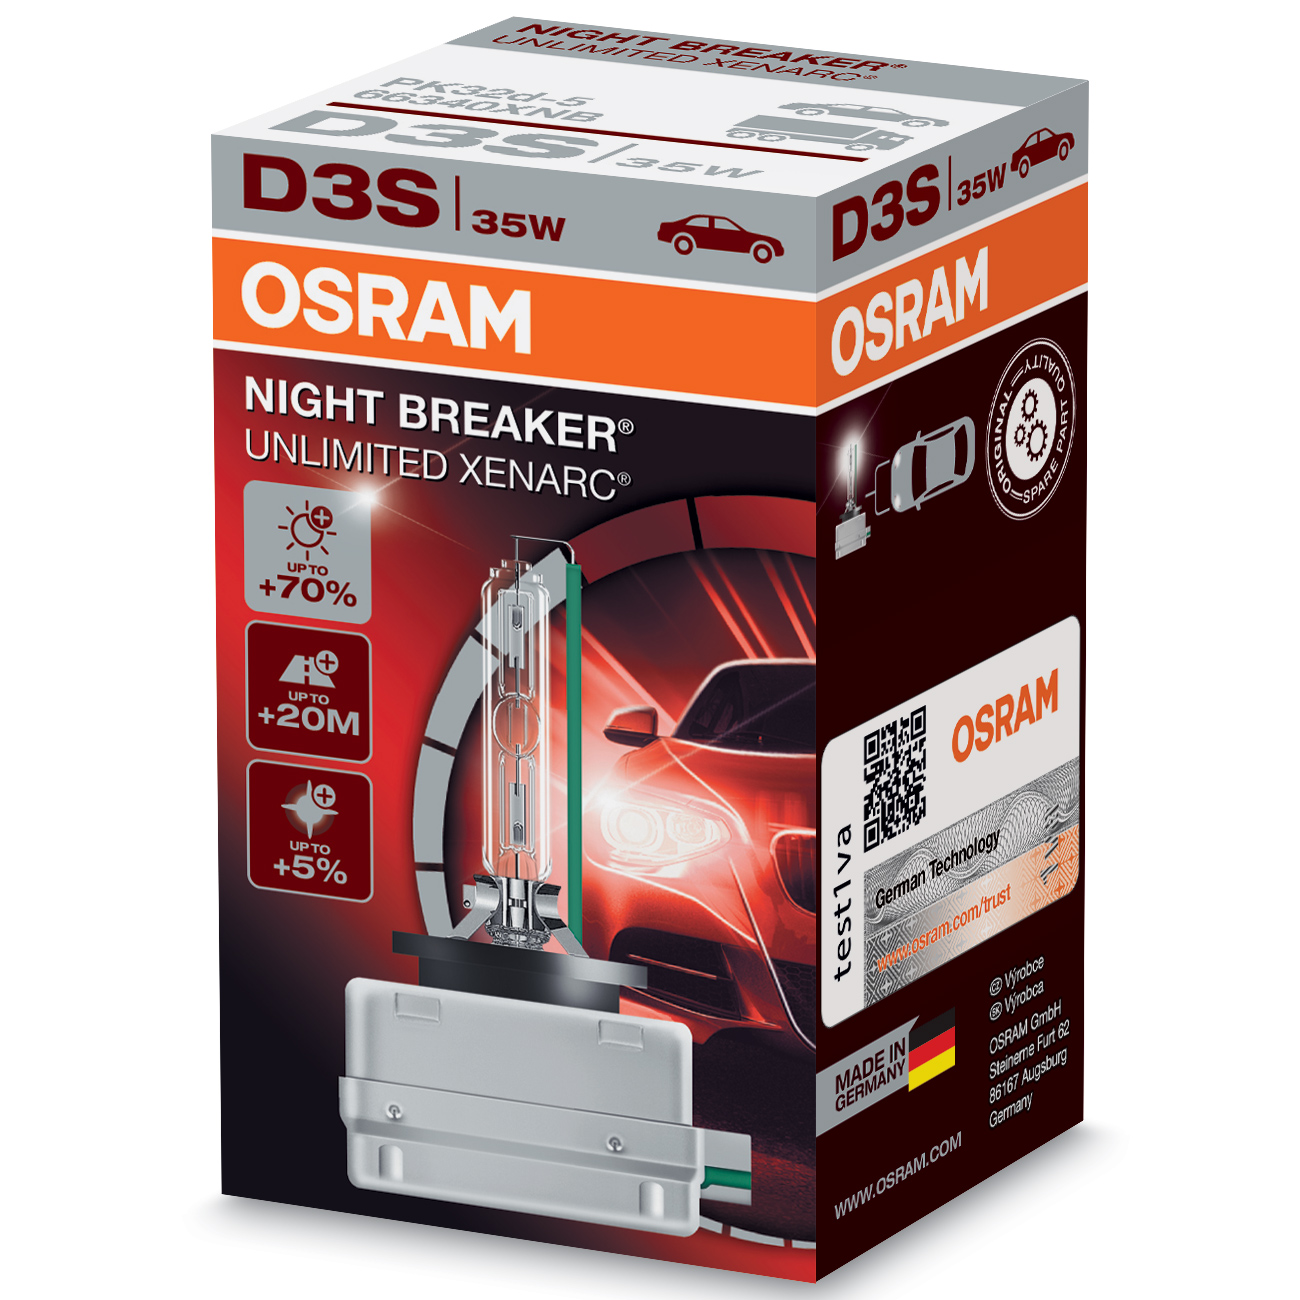 osram xenarc night breaker unlimited 70 light d3s xenon. Black Bedroom Furniture Sets. Home Design Ideas